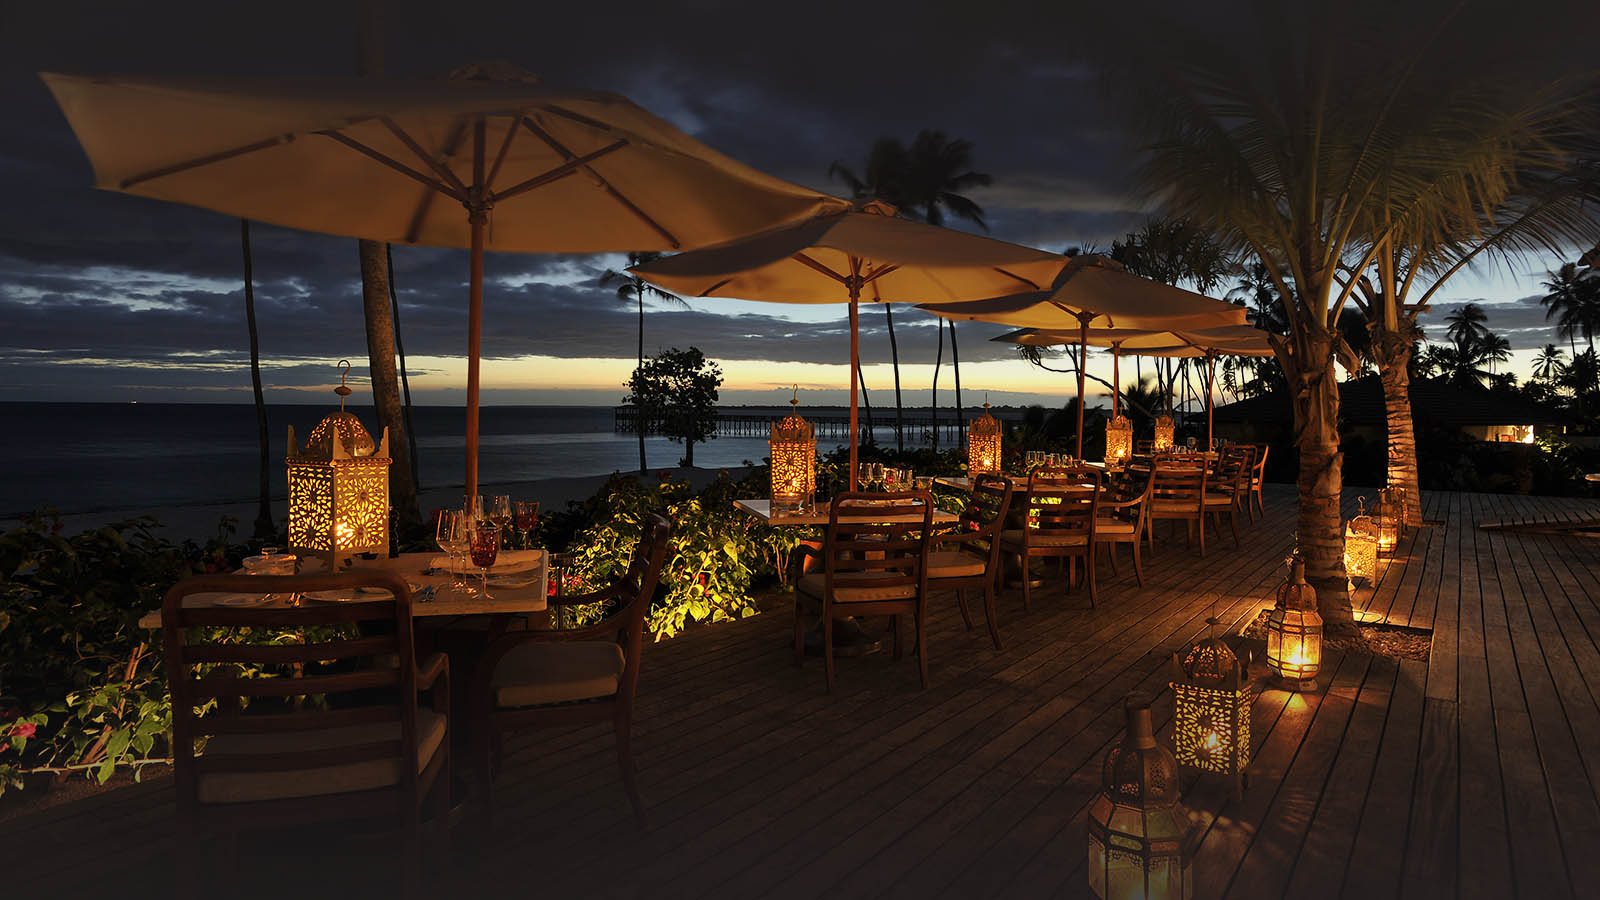 the residence south-of-zanzibar–kizimkazi-lodges-zambia-in-style-tanzania-stunningly-picturesque-island-evening-dining